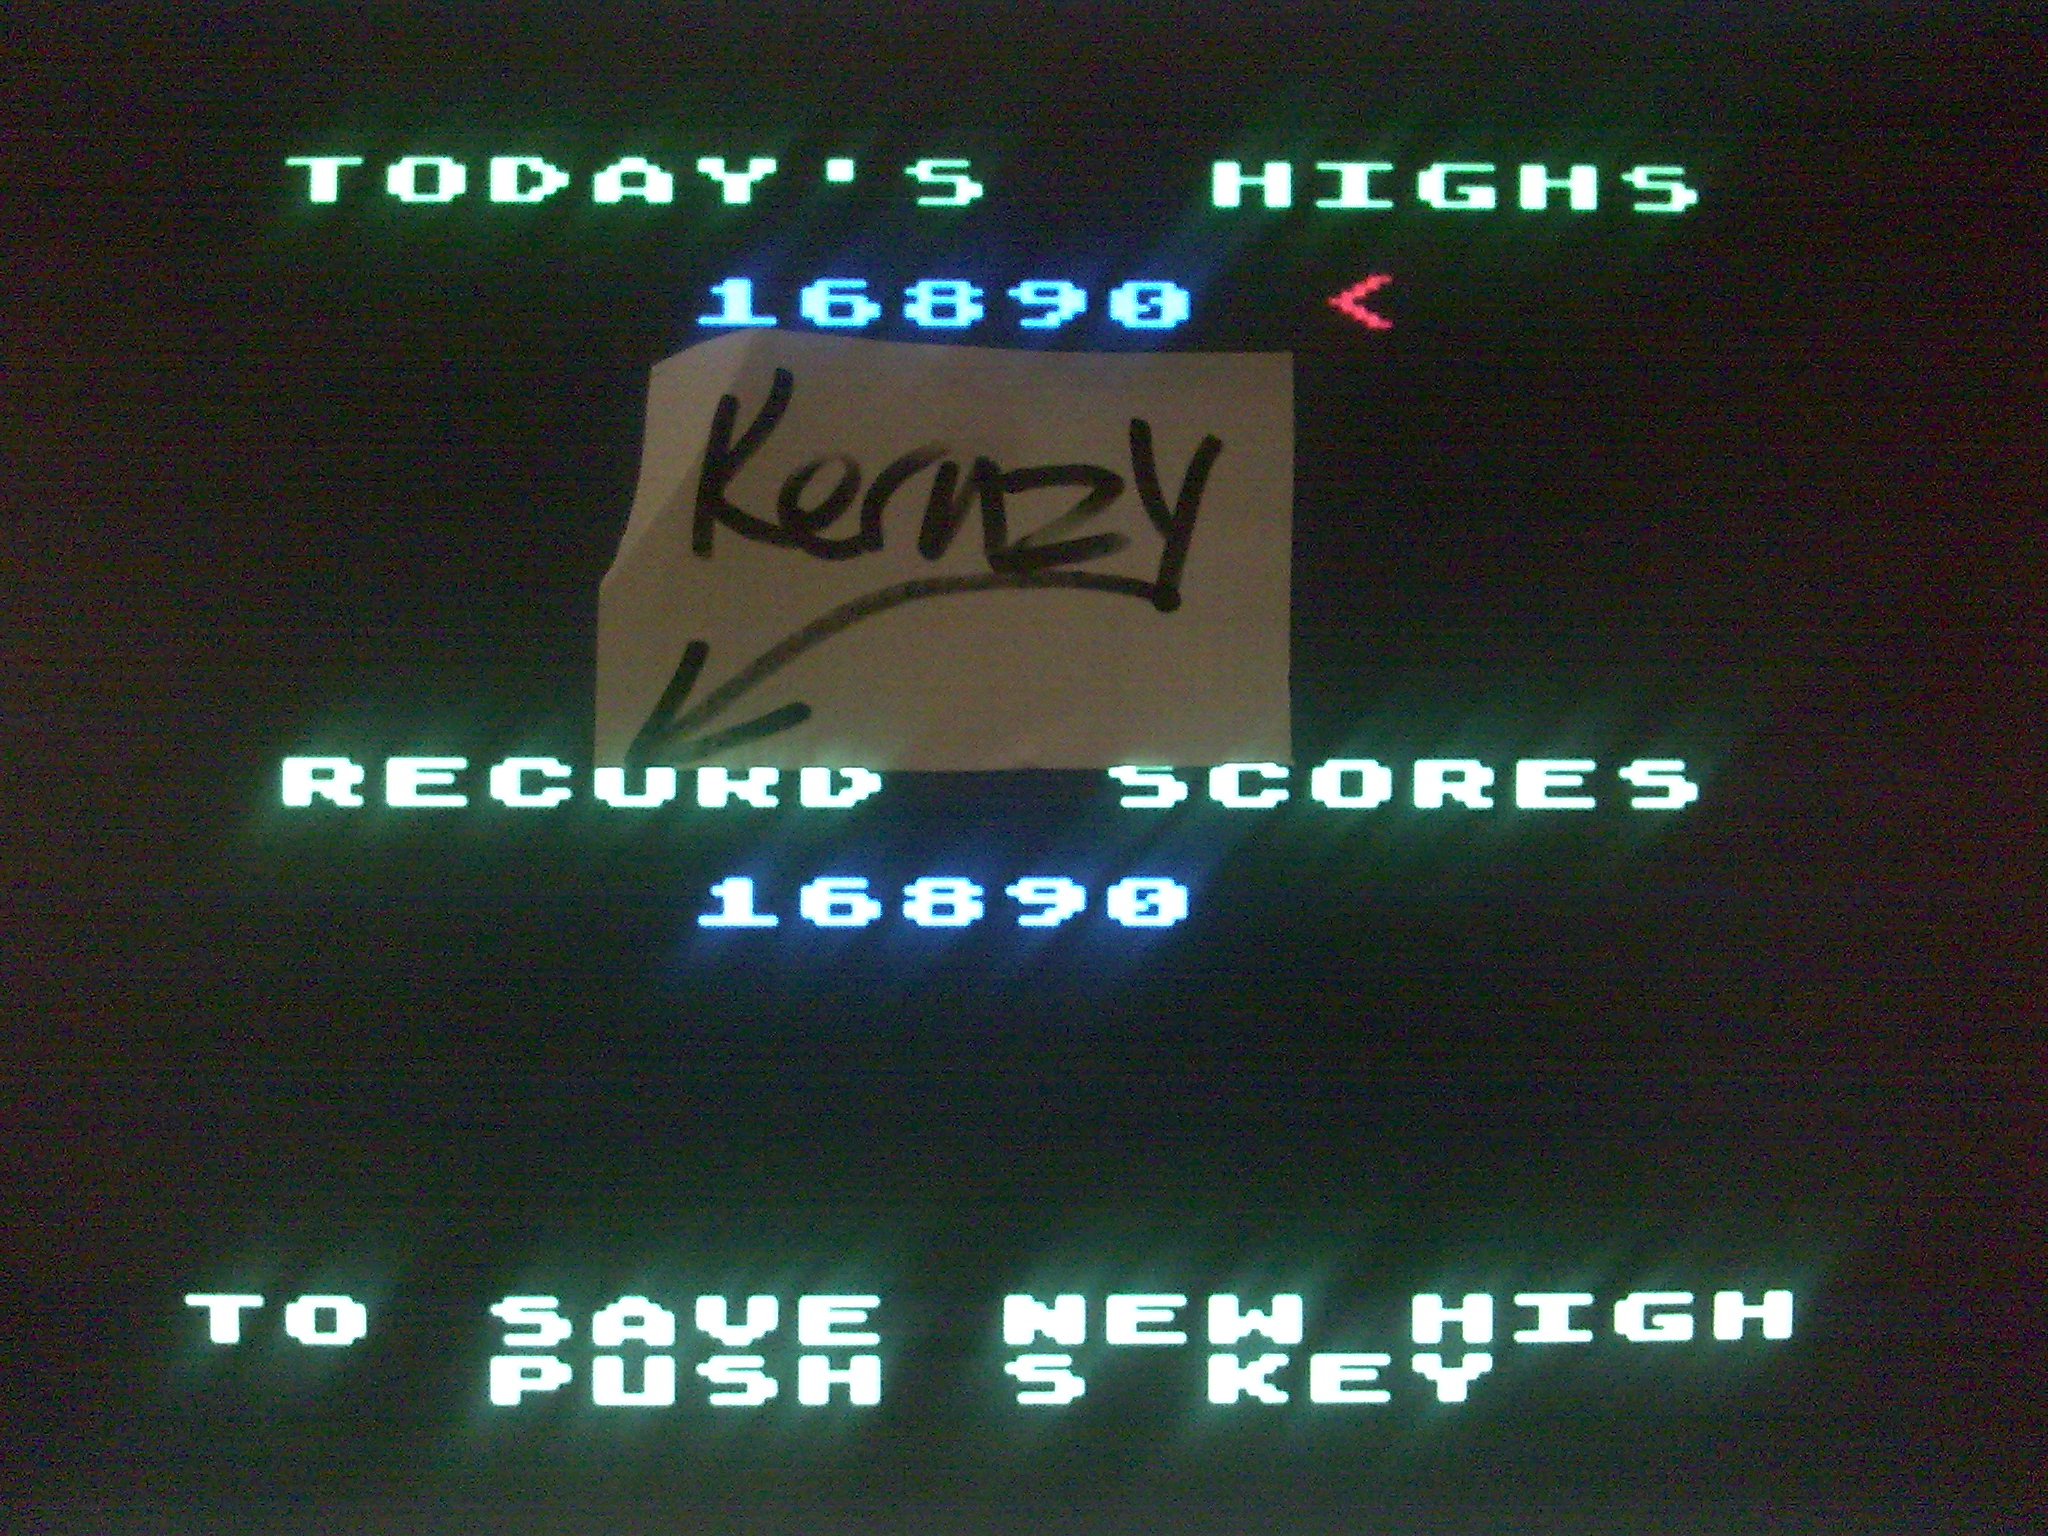 kernzy: Gorf (Atari 400/800/XL/XE Emulated) 16,890 points on 2014-10-21 13:05:43